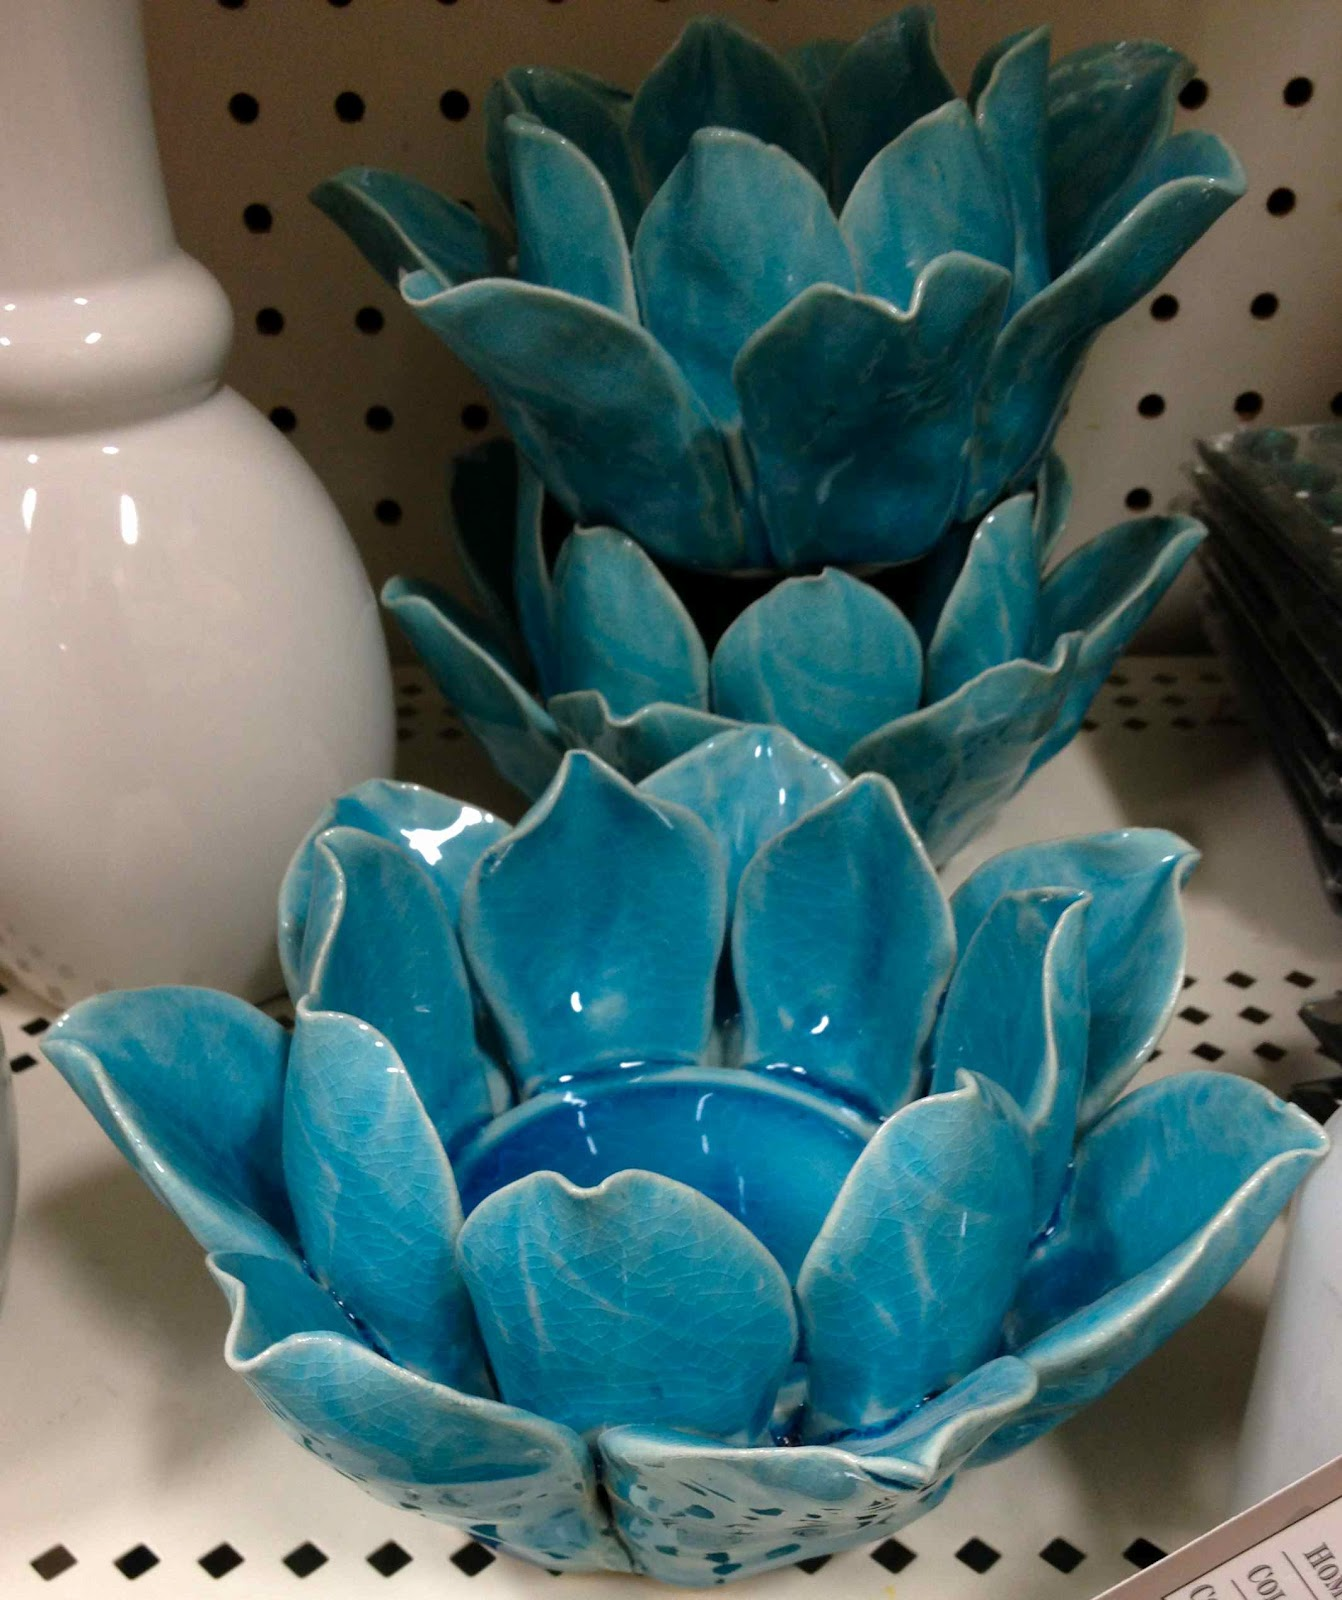 Captivating Smaller Tealight Holders (regular Price: $6.99)